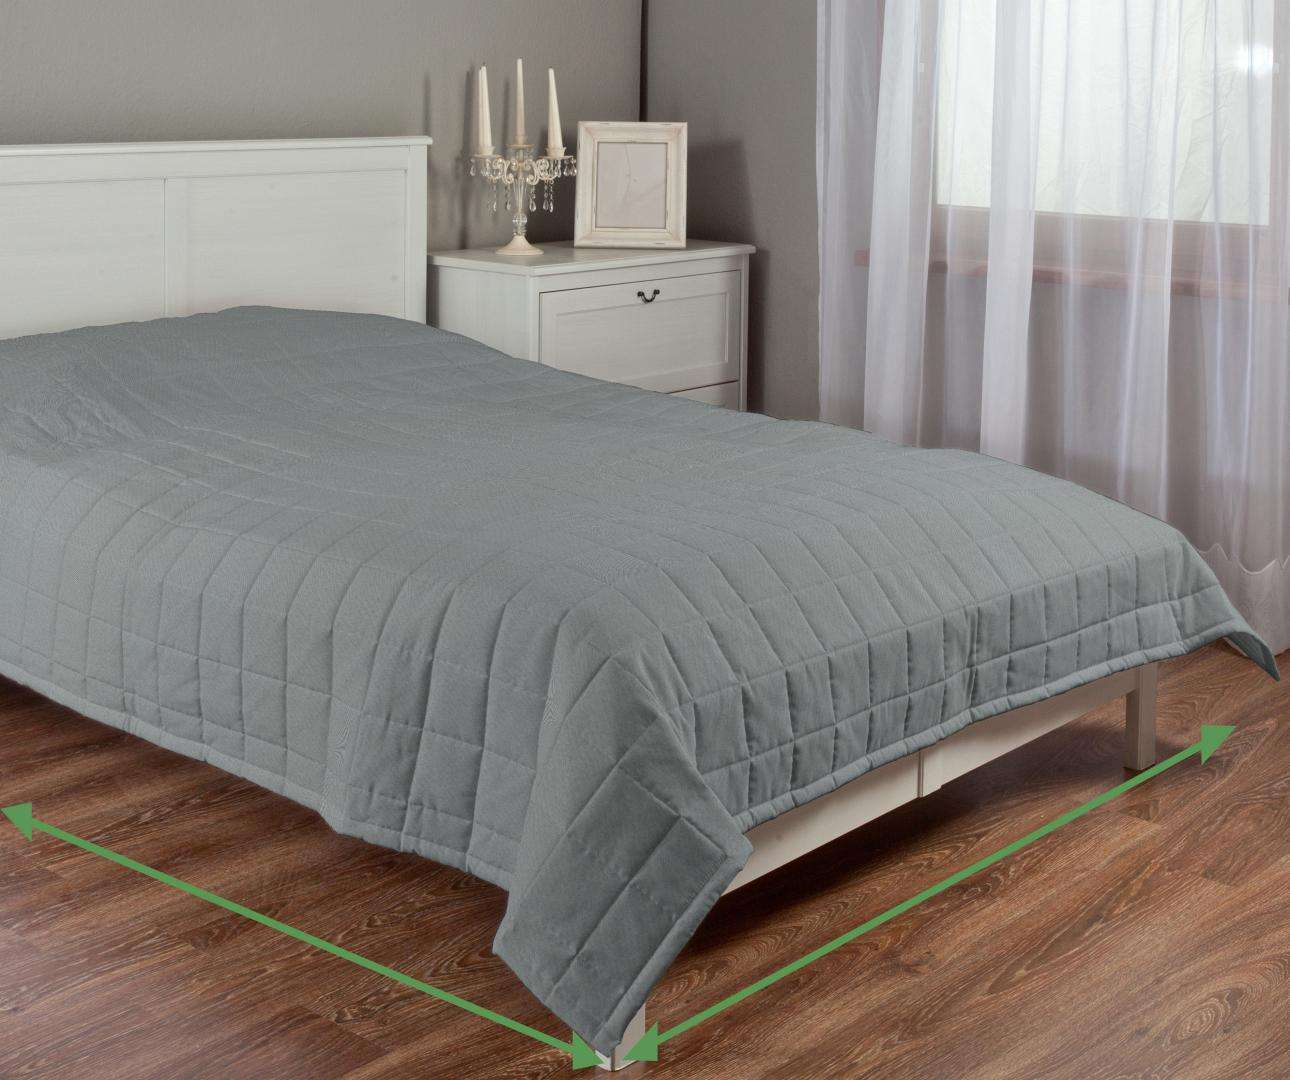 Quilted throw (check quilt pattern) in collection Milano, fabric: 150-23